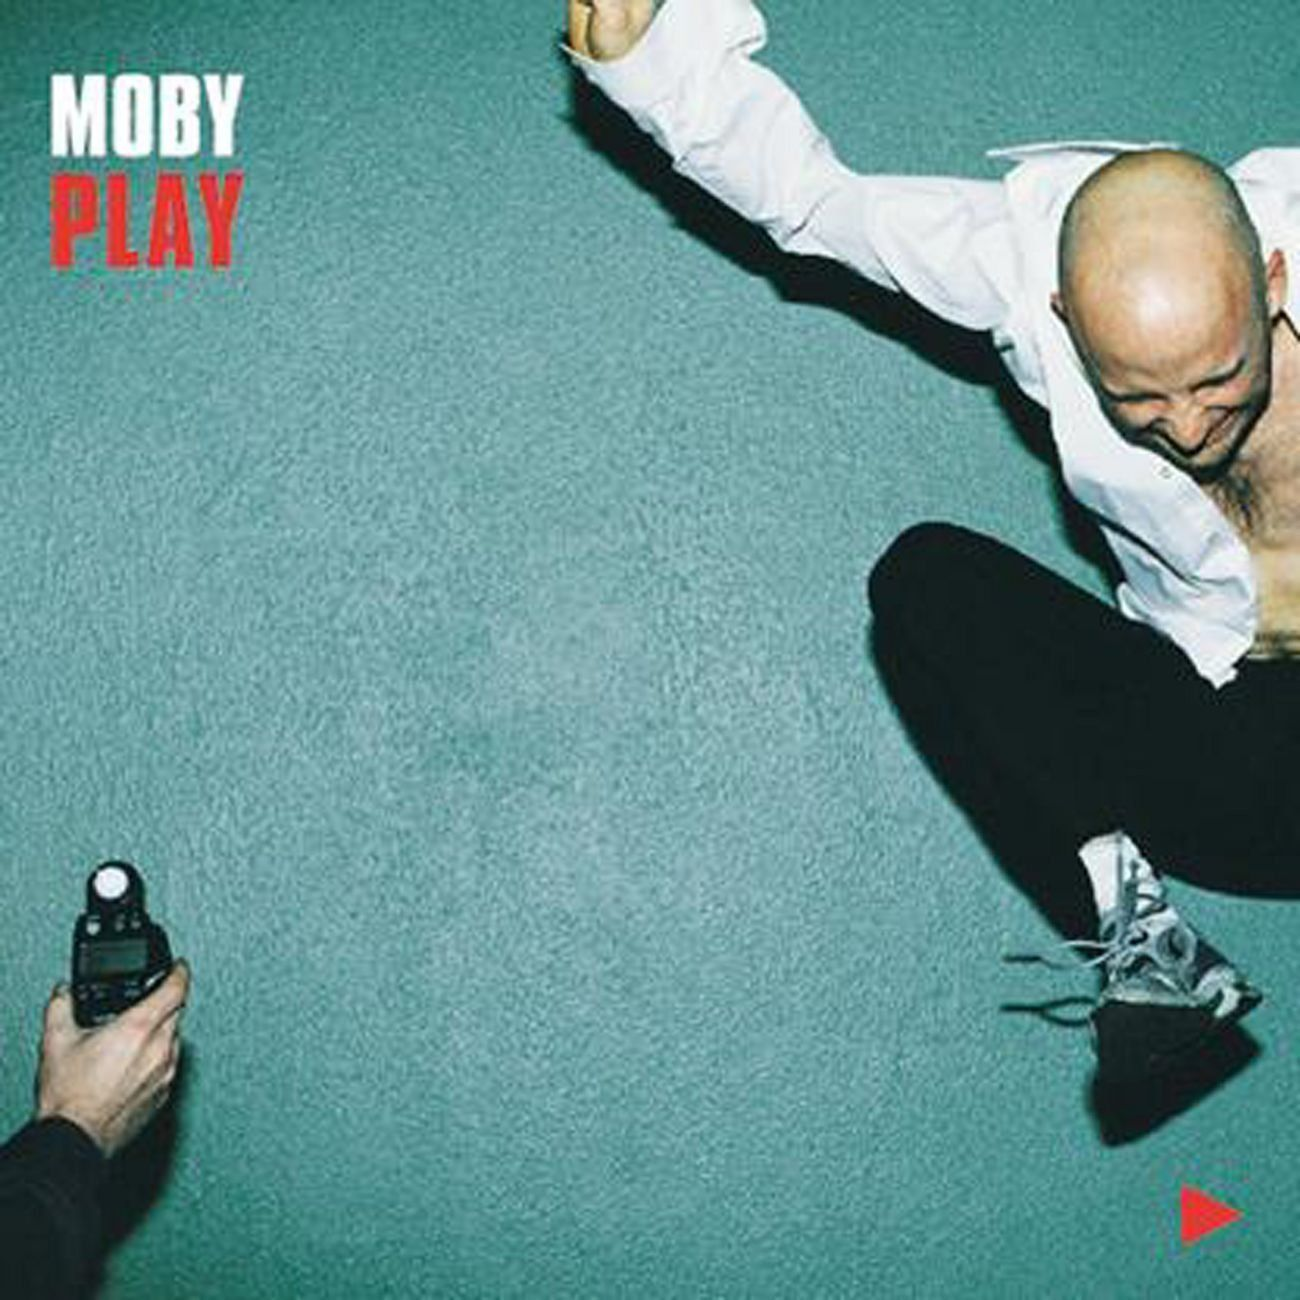 Image result for moby play